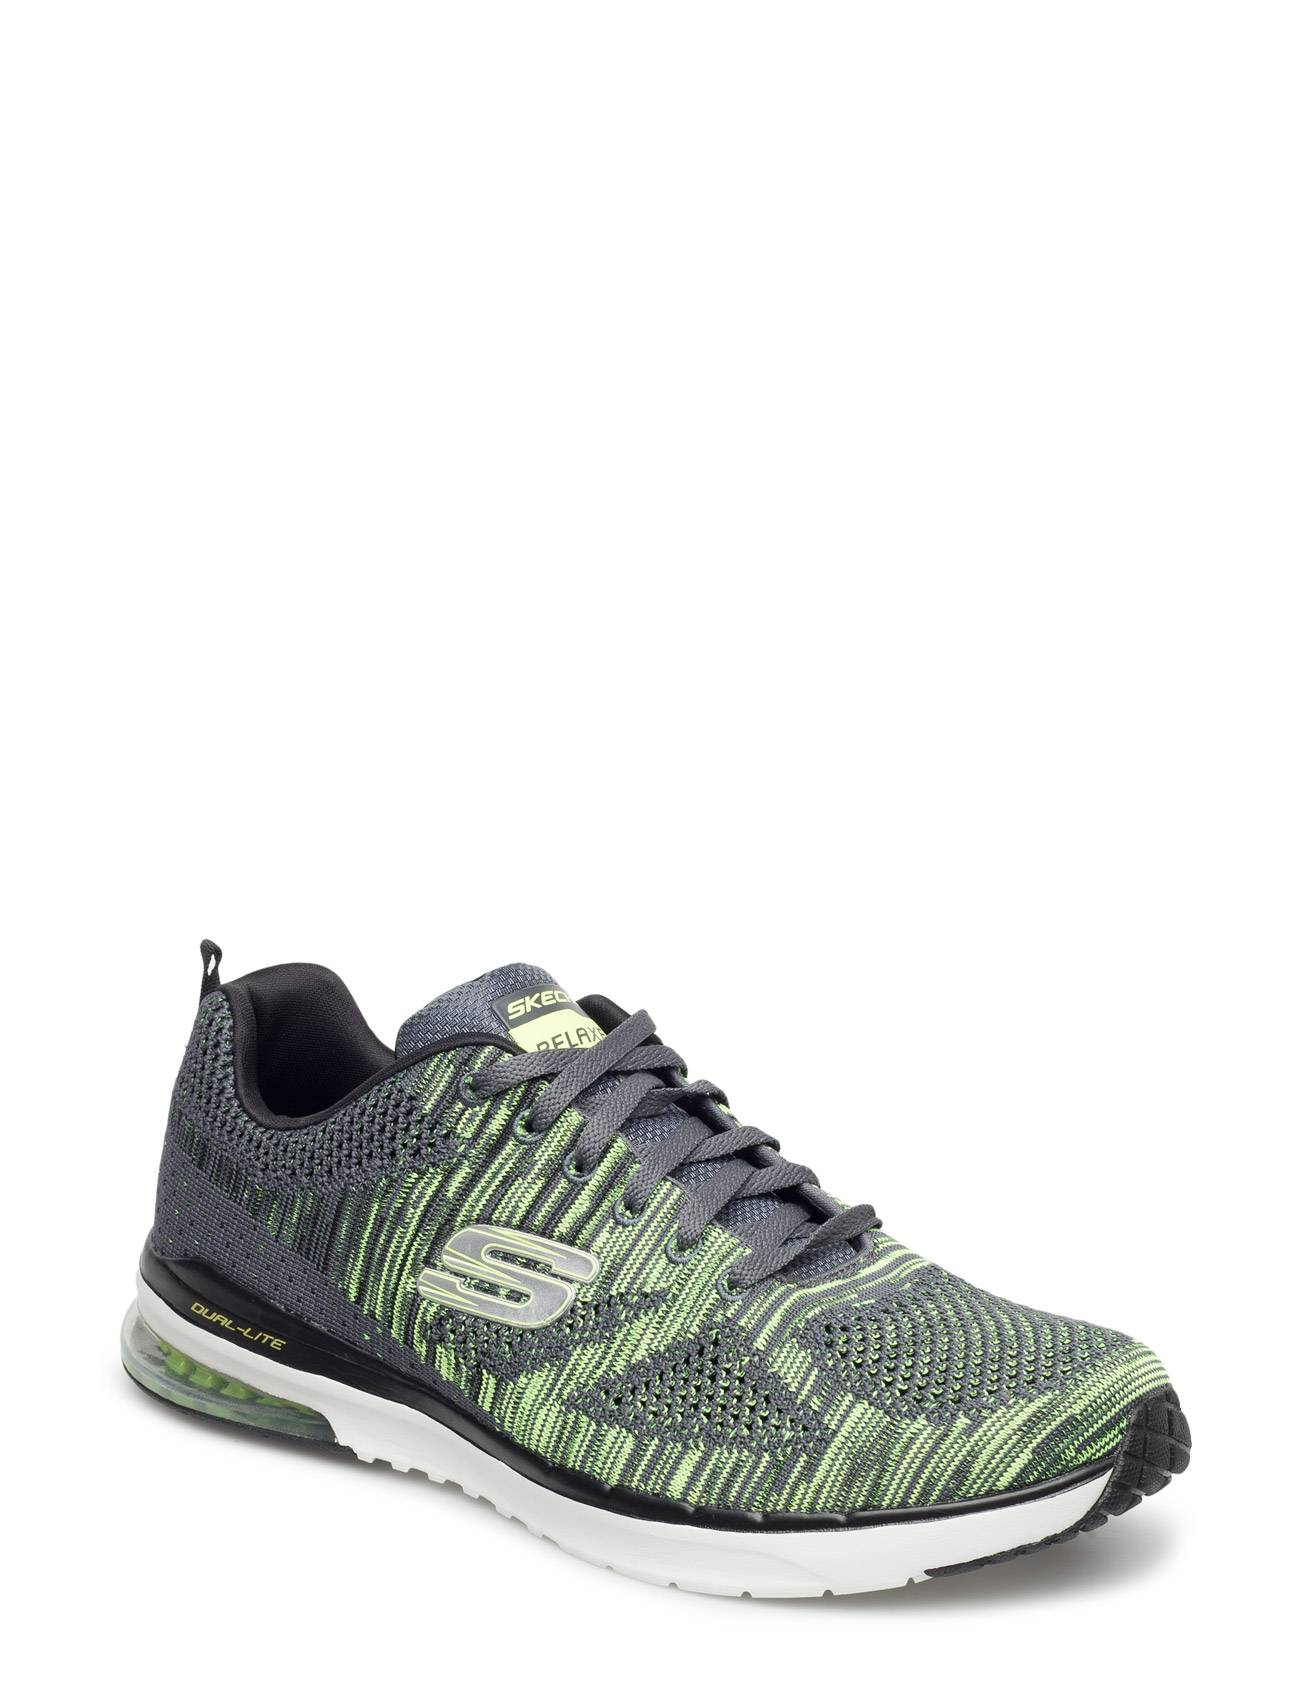 Skechers Skech-Air Infinity - Rapid Fire